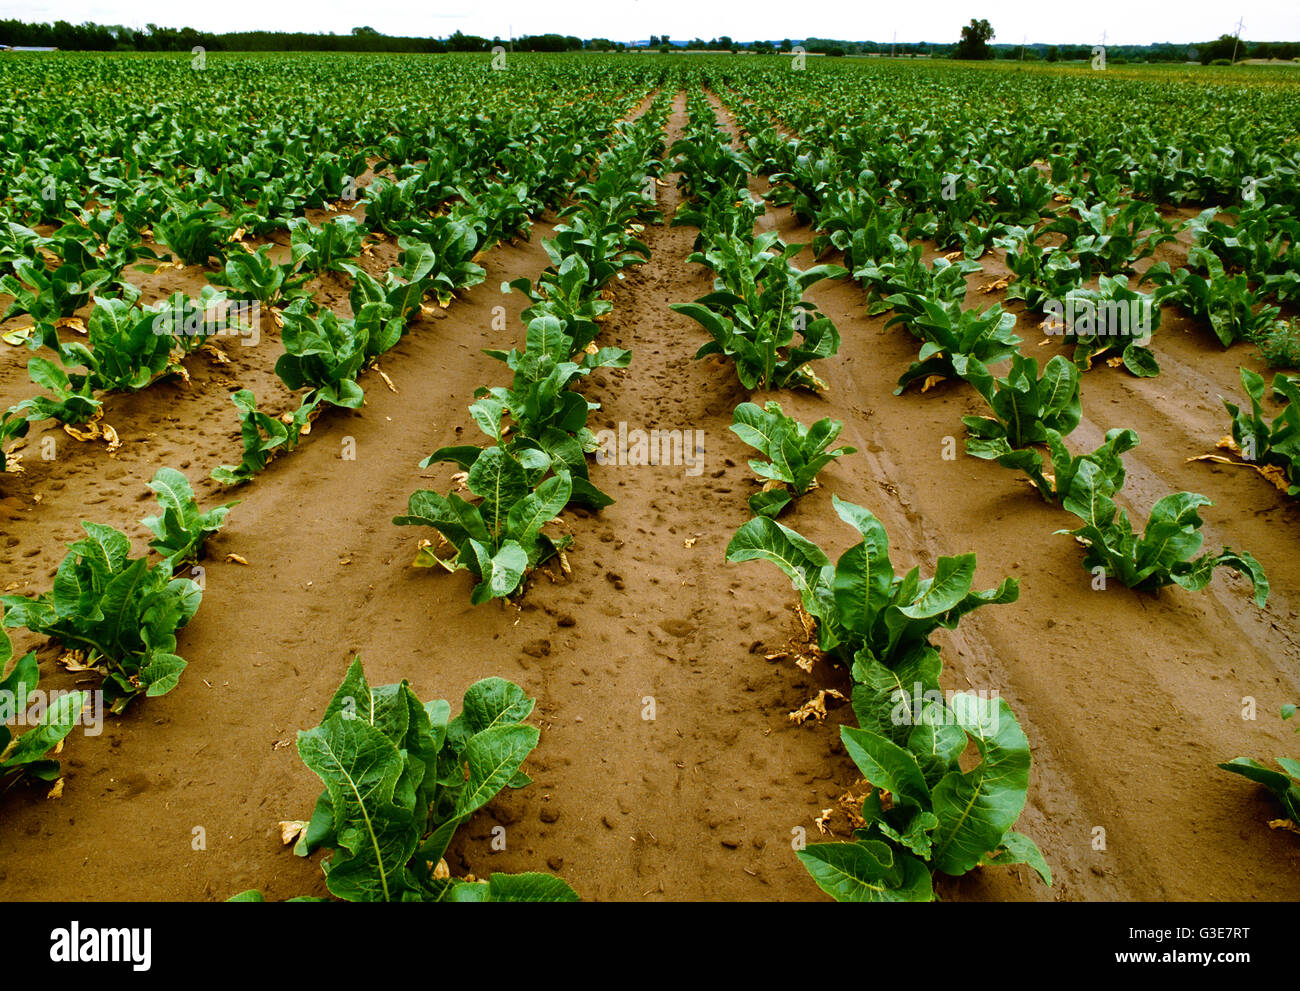 Agriculture - Field of mid growth horseradish plants / Wisconsin, USA. - Stock Image